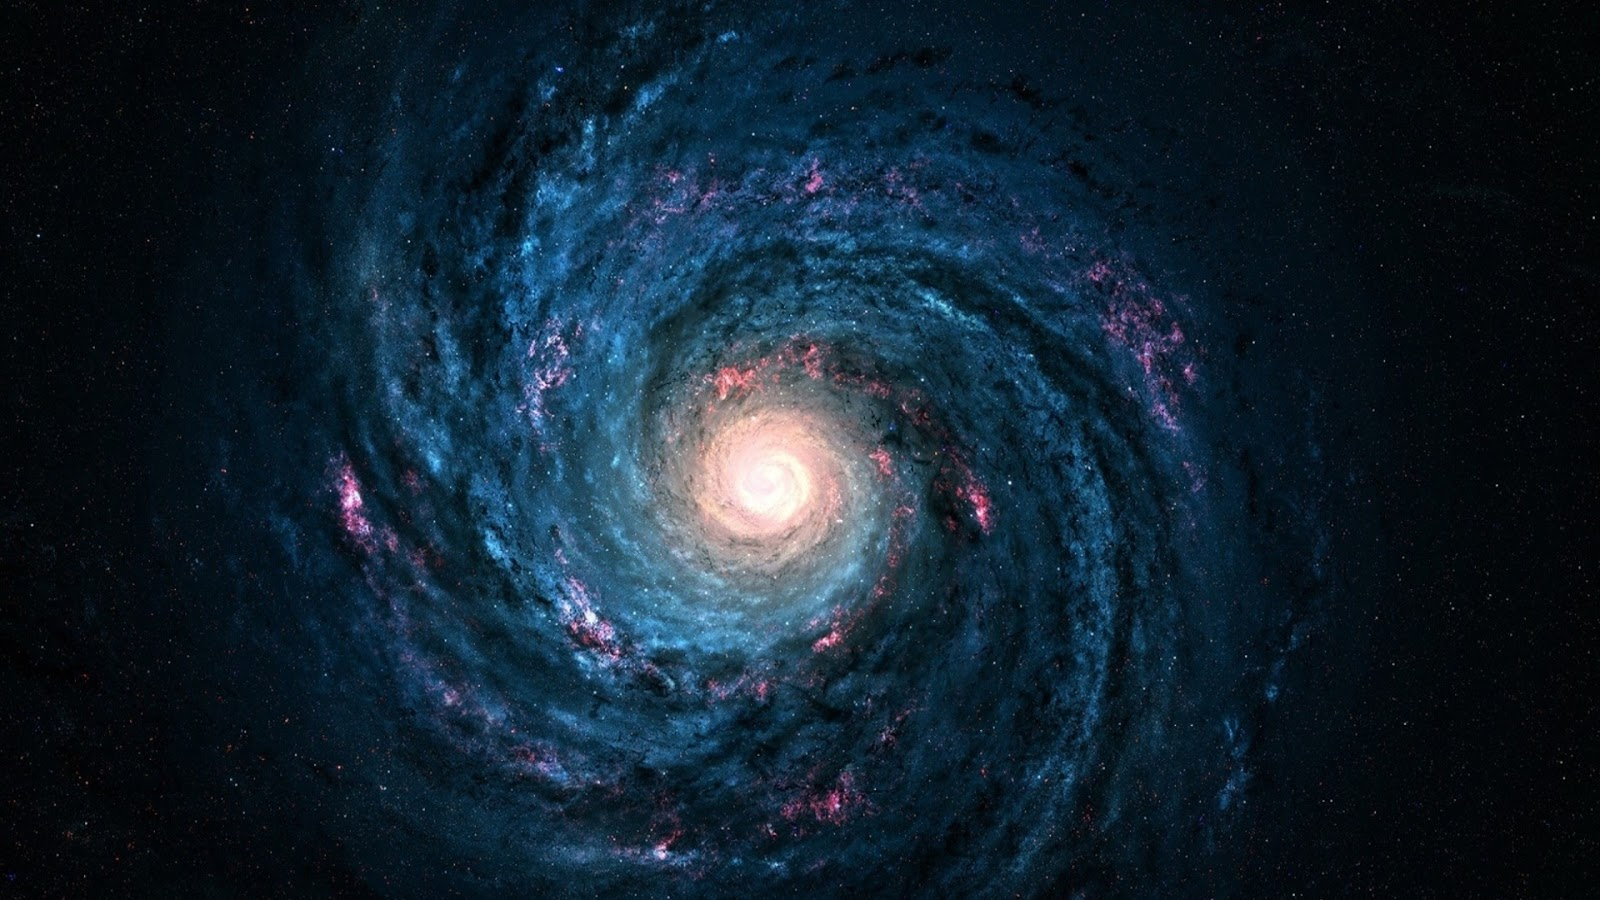 Galaxy Milky Way Hd - Pics about space